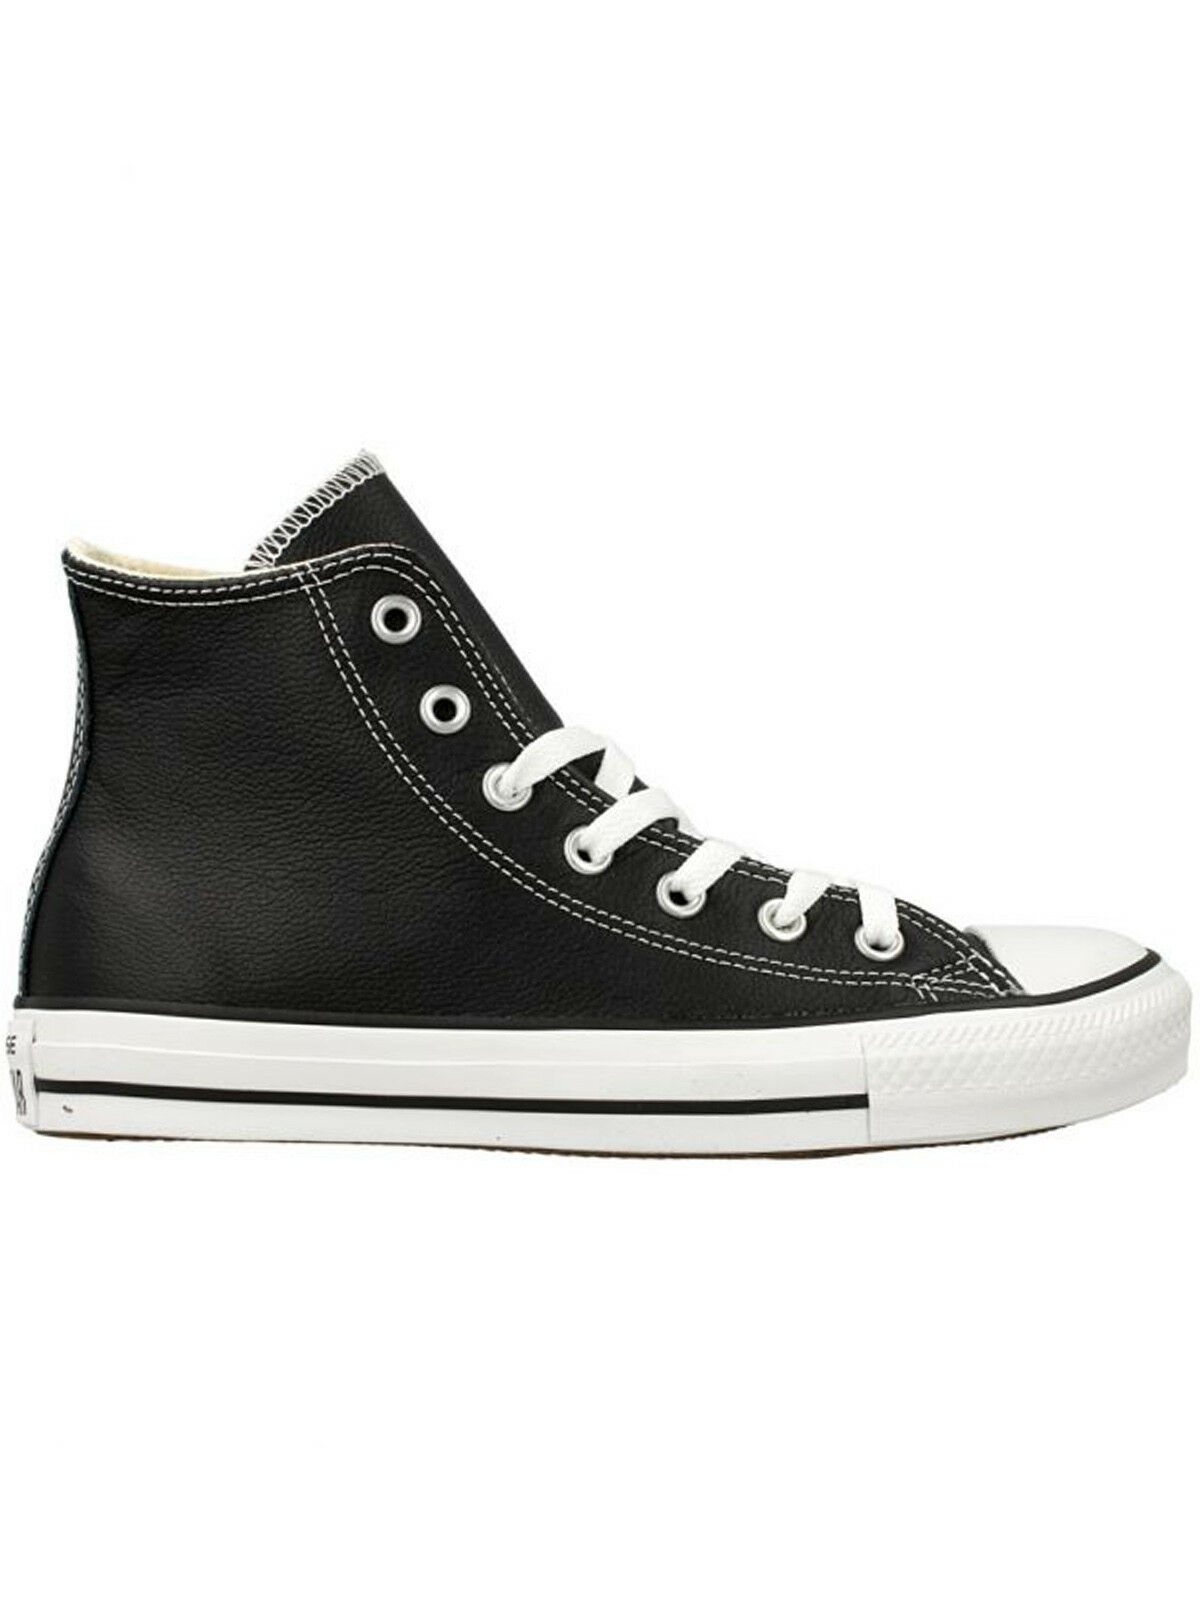 Converse All Star Hi Leather  132170C